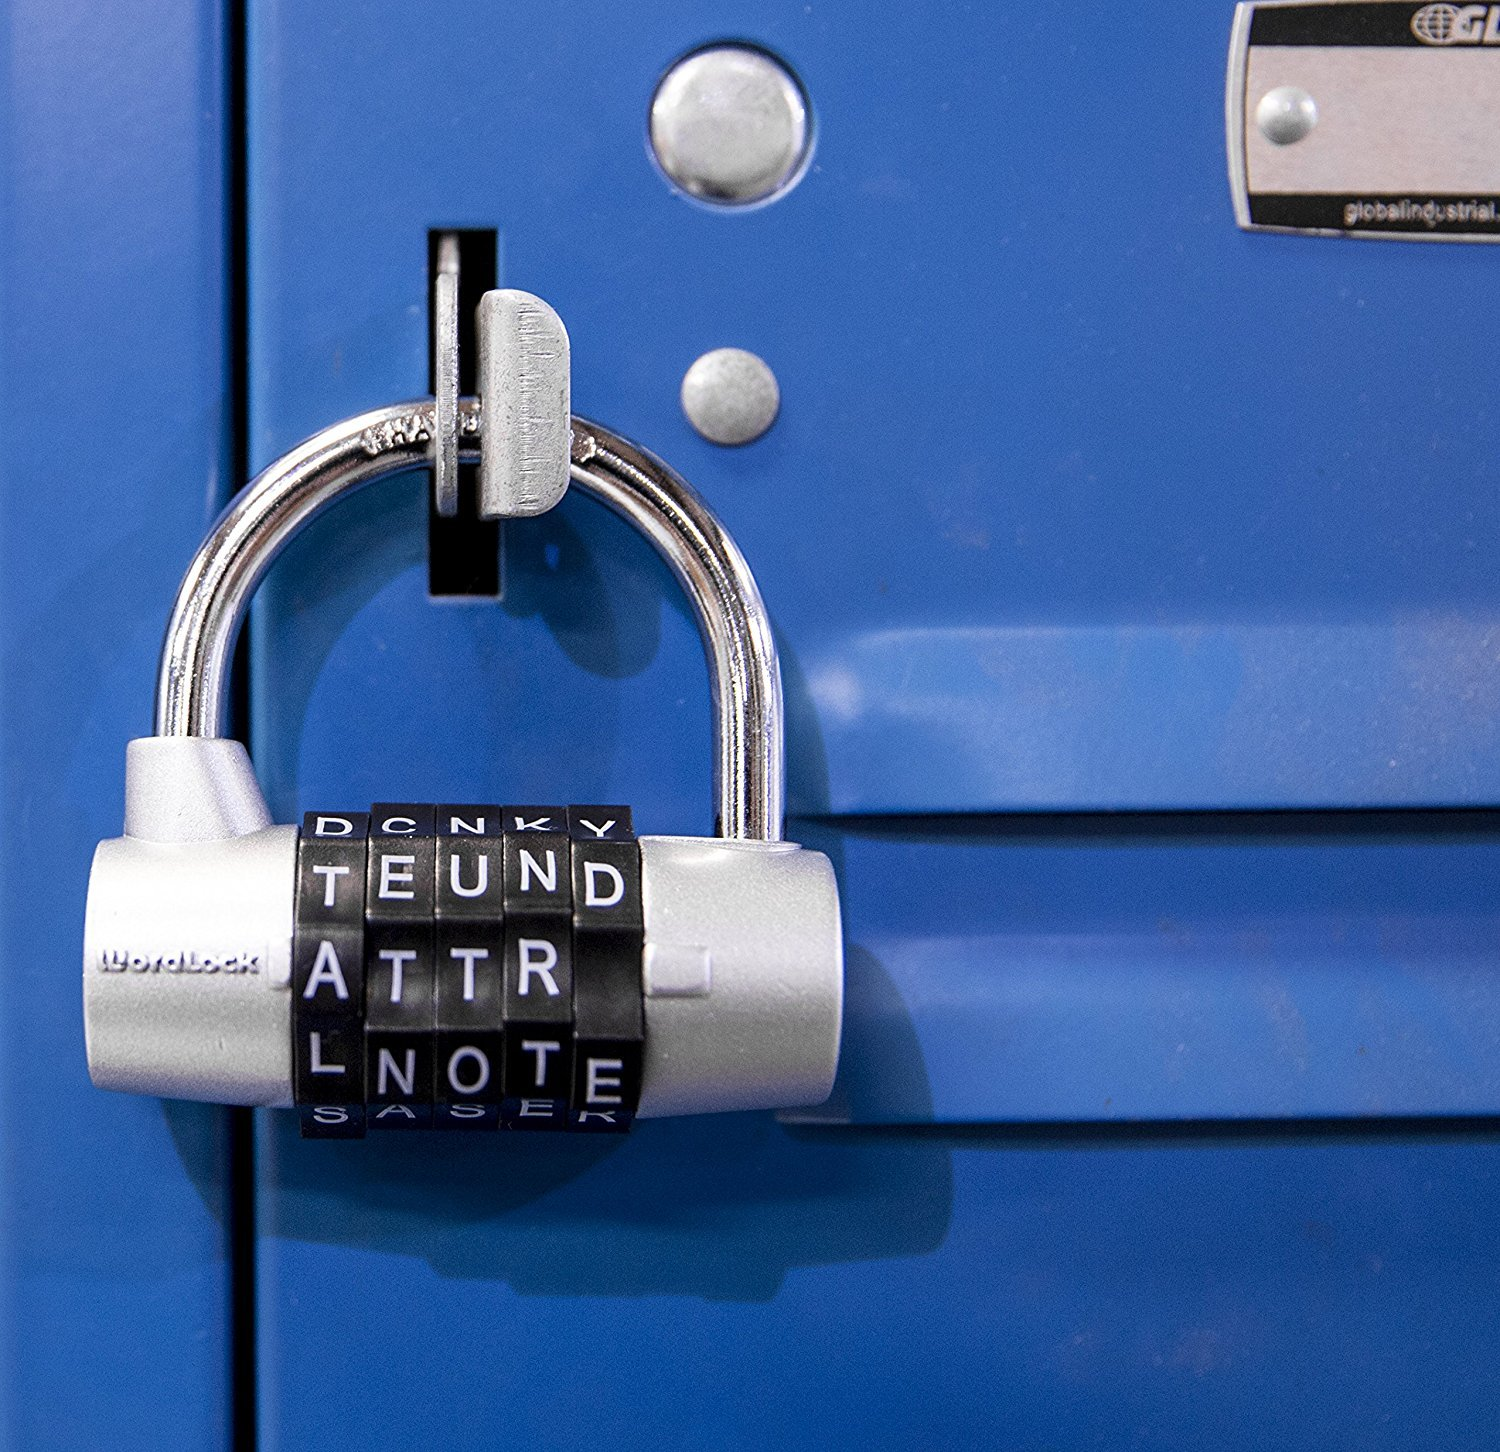 Wordlock PL-003-SL 5-Dial Combination Padlock, Silver 2pack by World and Main-Exclusives (Image #5)